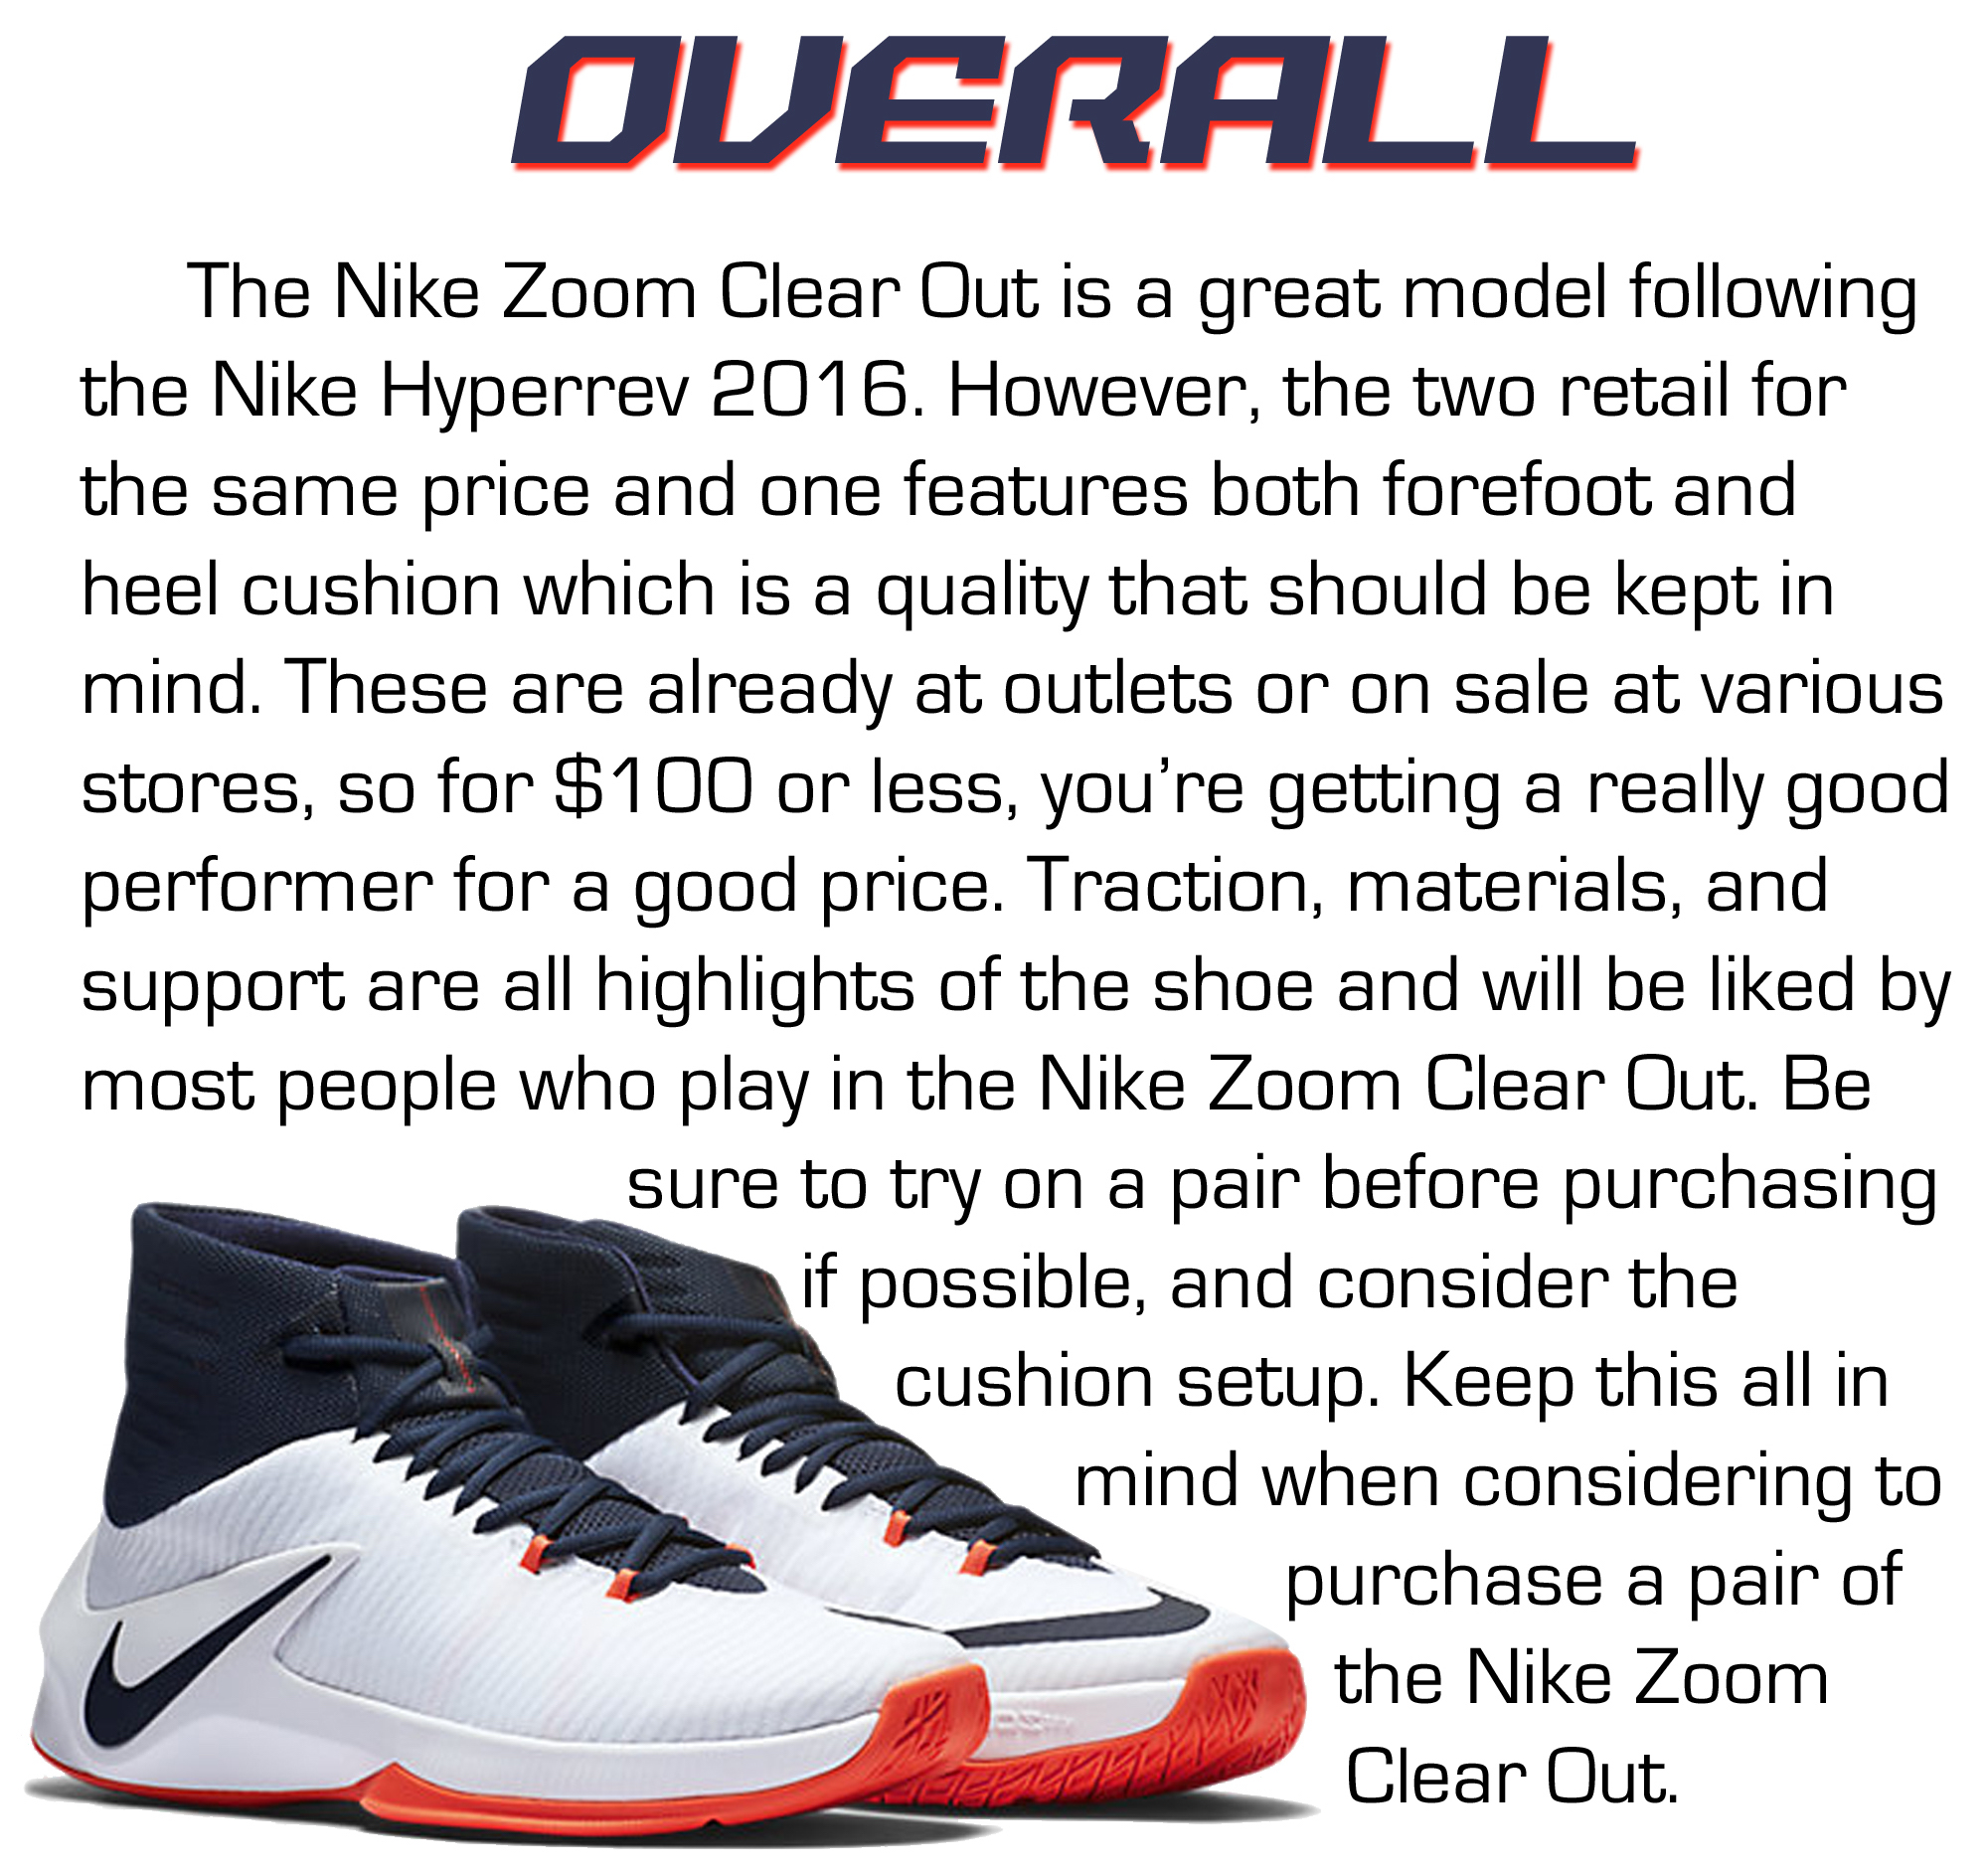 nike zoom clear out performance review 6